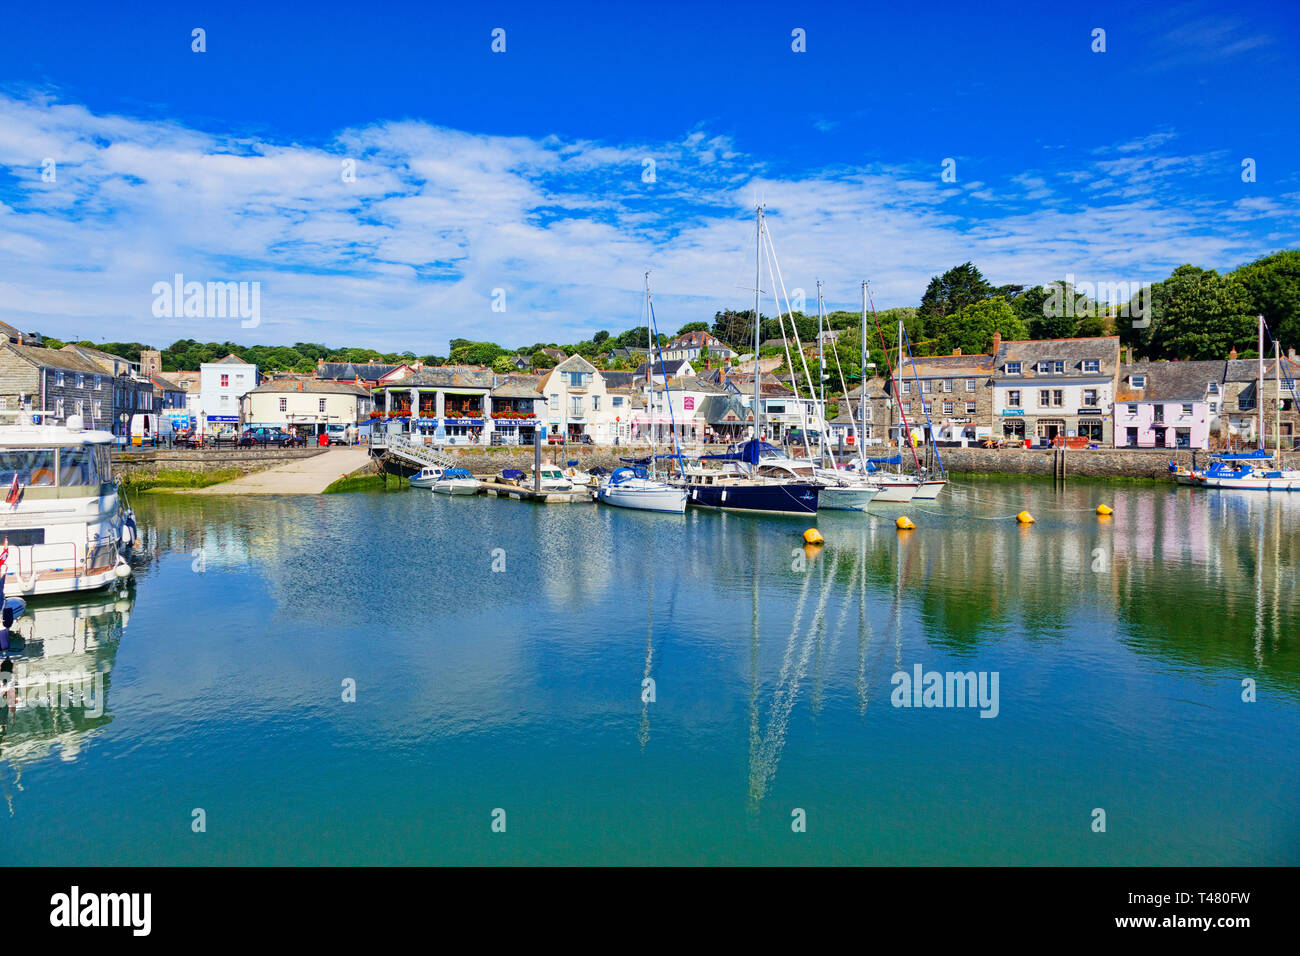 26 June 2018: Padstow, Cornwall, UK - The harbour and waterfront. Stock Photo